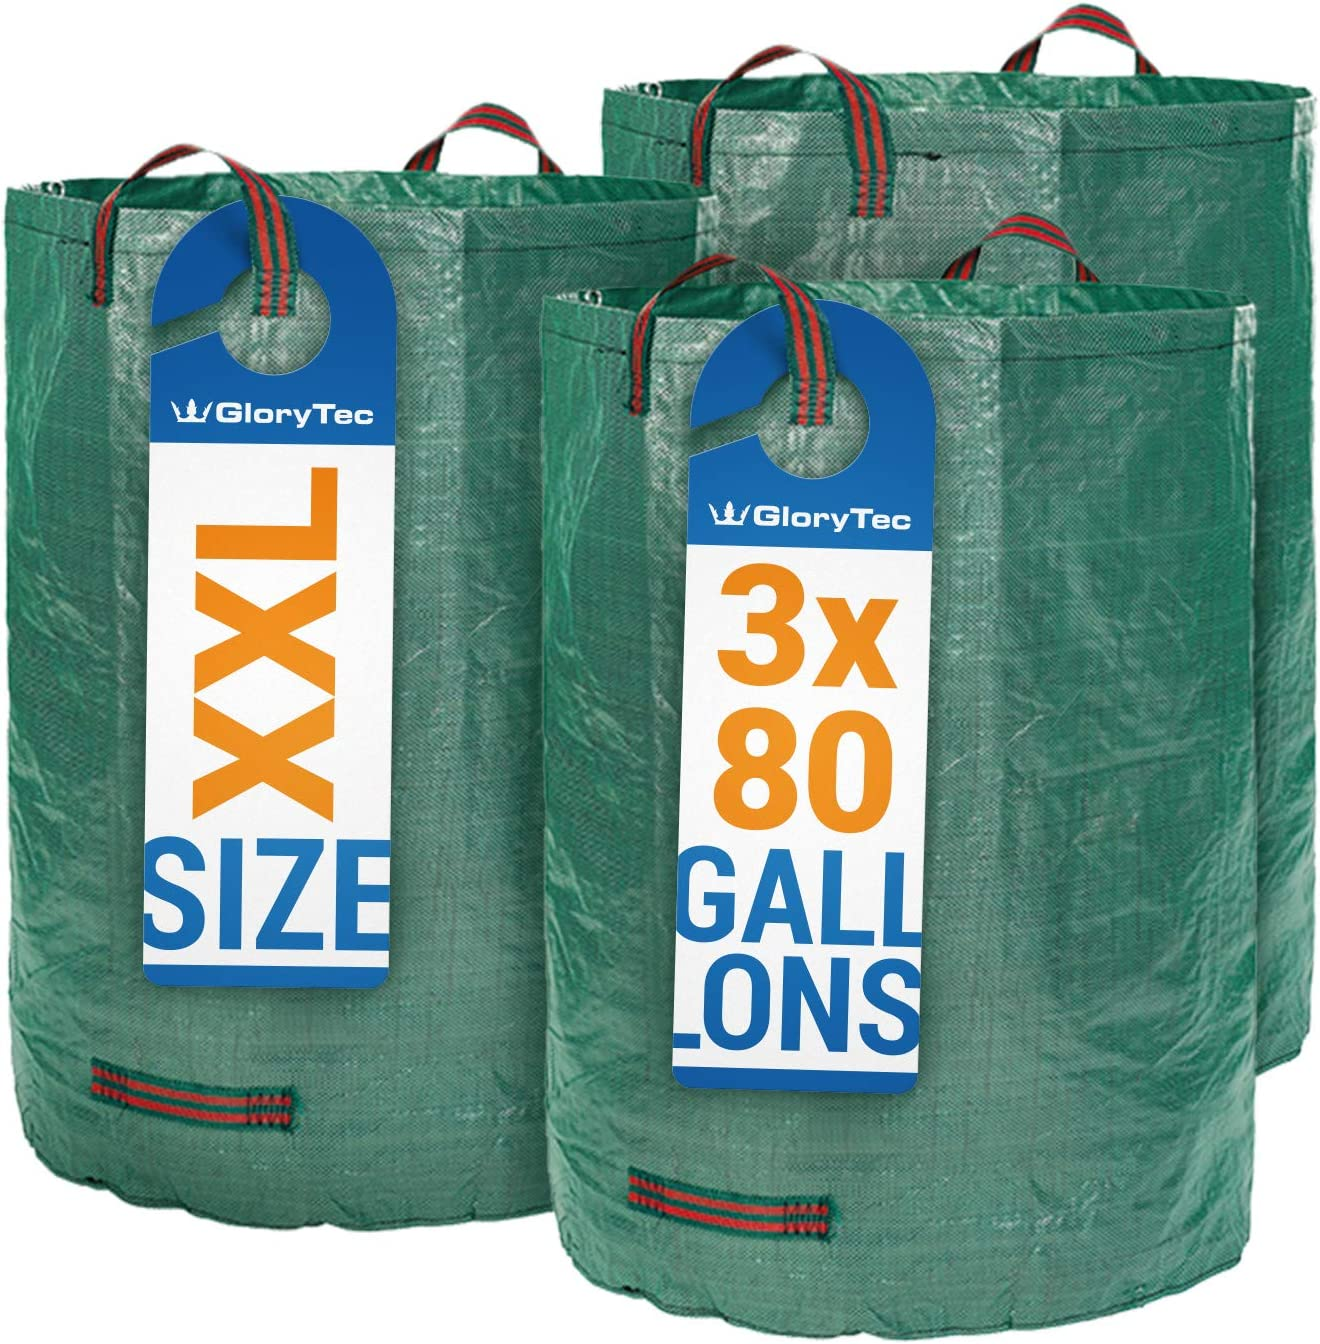 Glorytec 3-Pack 80 Gallons Garden Bag - Extra Large Reusable Leaf Bags - Garden Waste Bags - Collapsible Gardening Containers for Lawn and Yard Waste ...